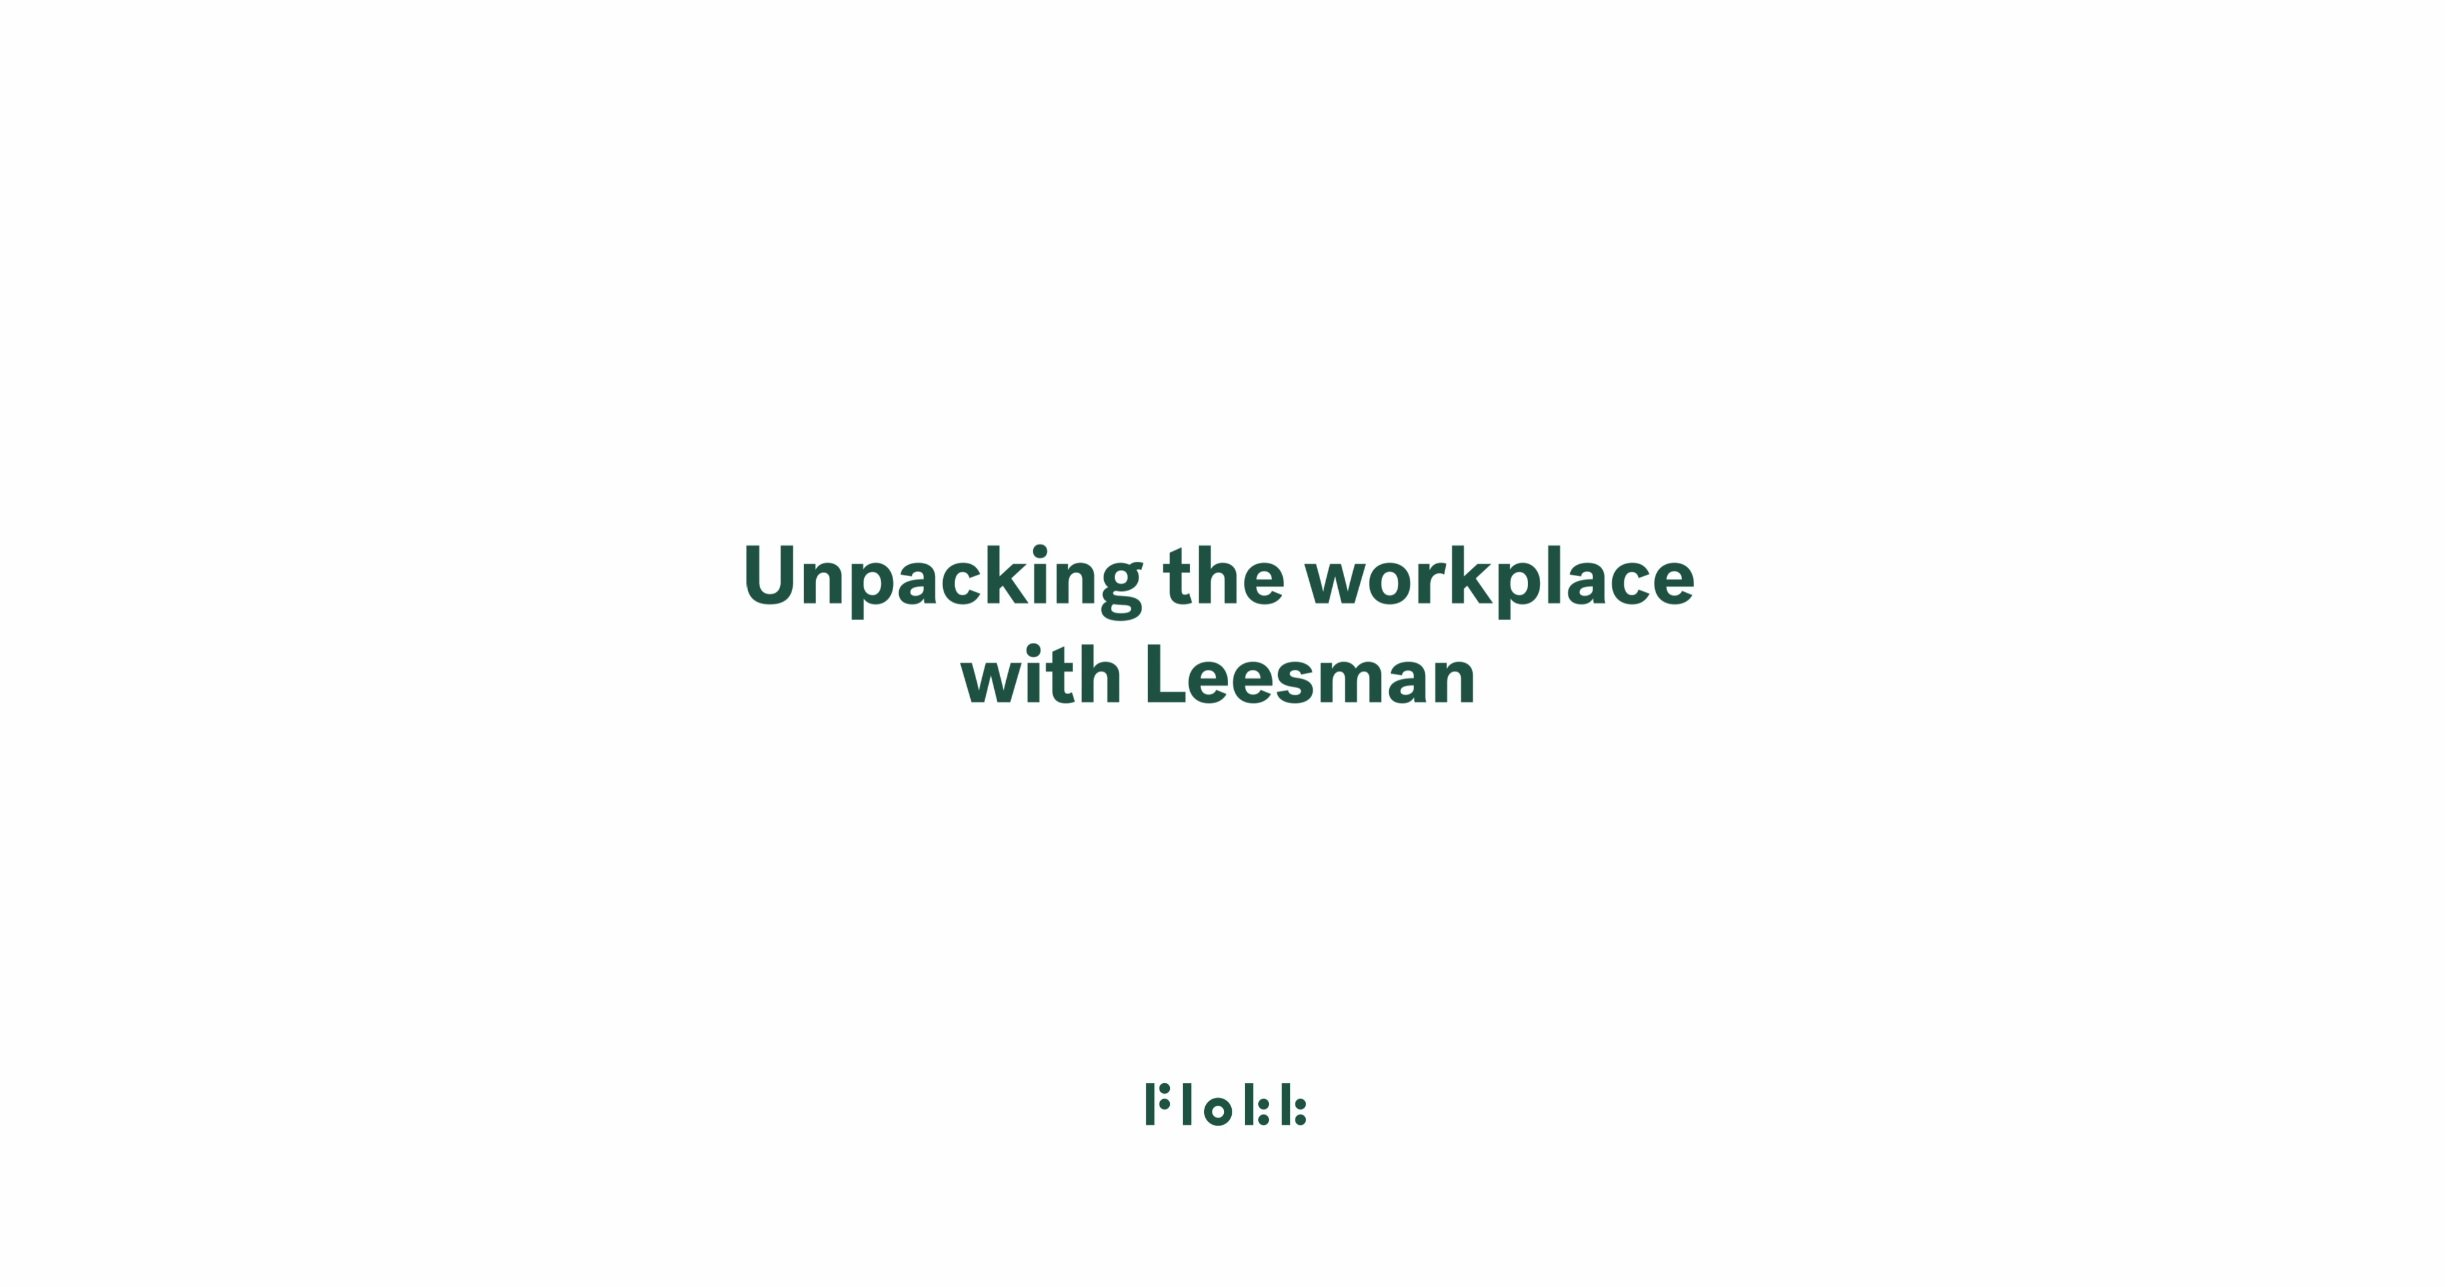 unpacking the workplace with Leesman Index - full video by Flokk